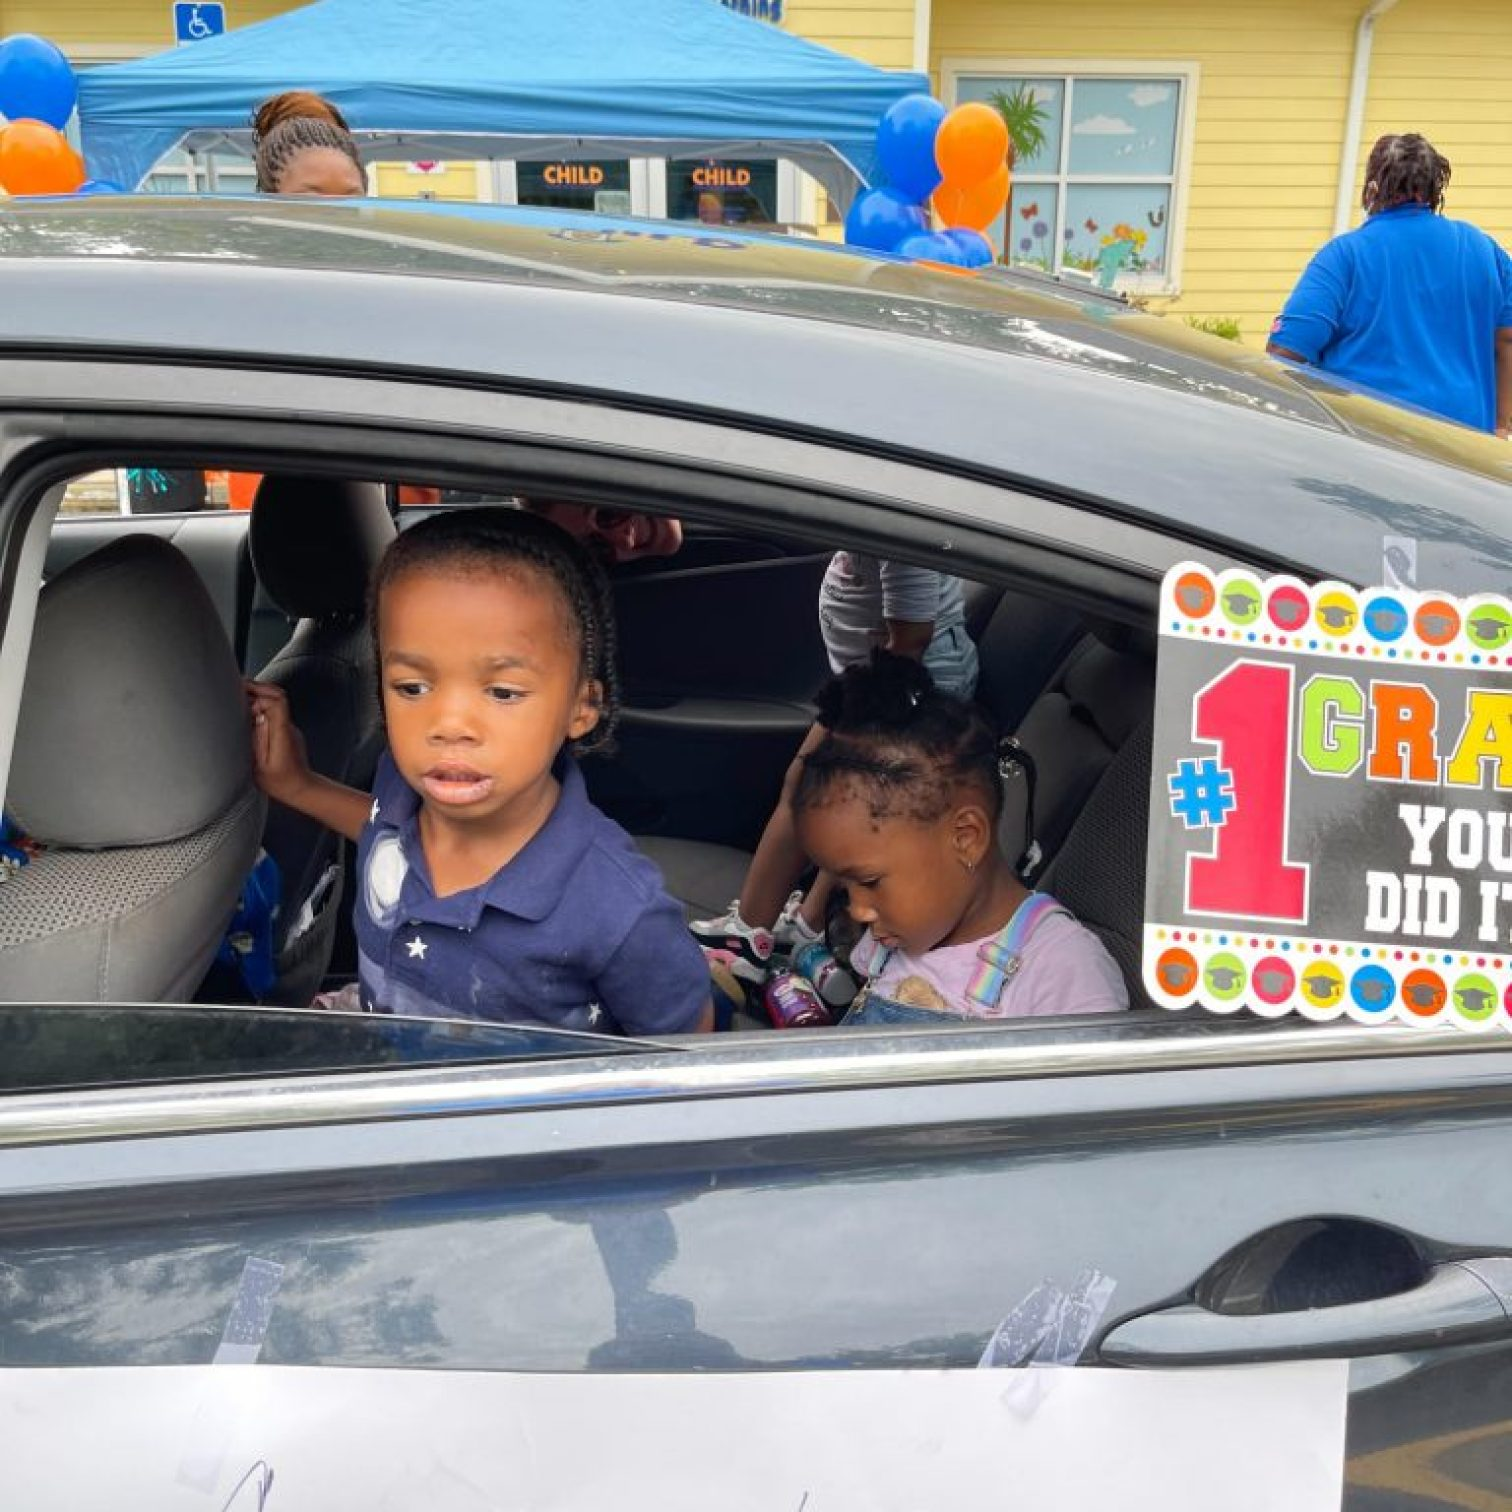 """Two young children ride in the back of a car decorated with a sign that reads, """"#1 GRAD, YOU DID IT!"""""""